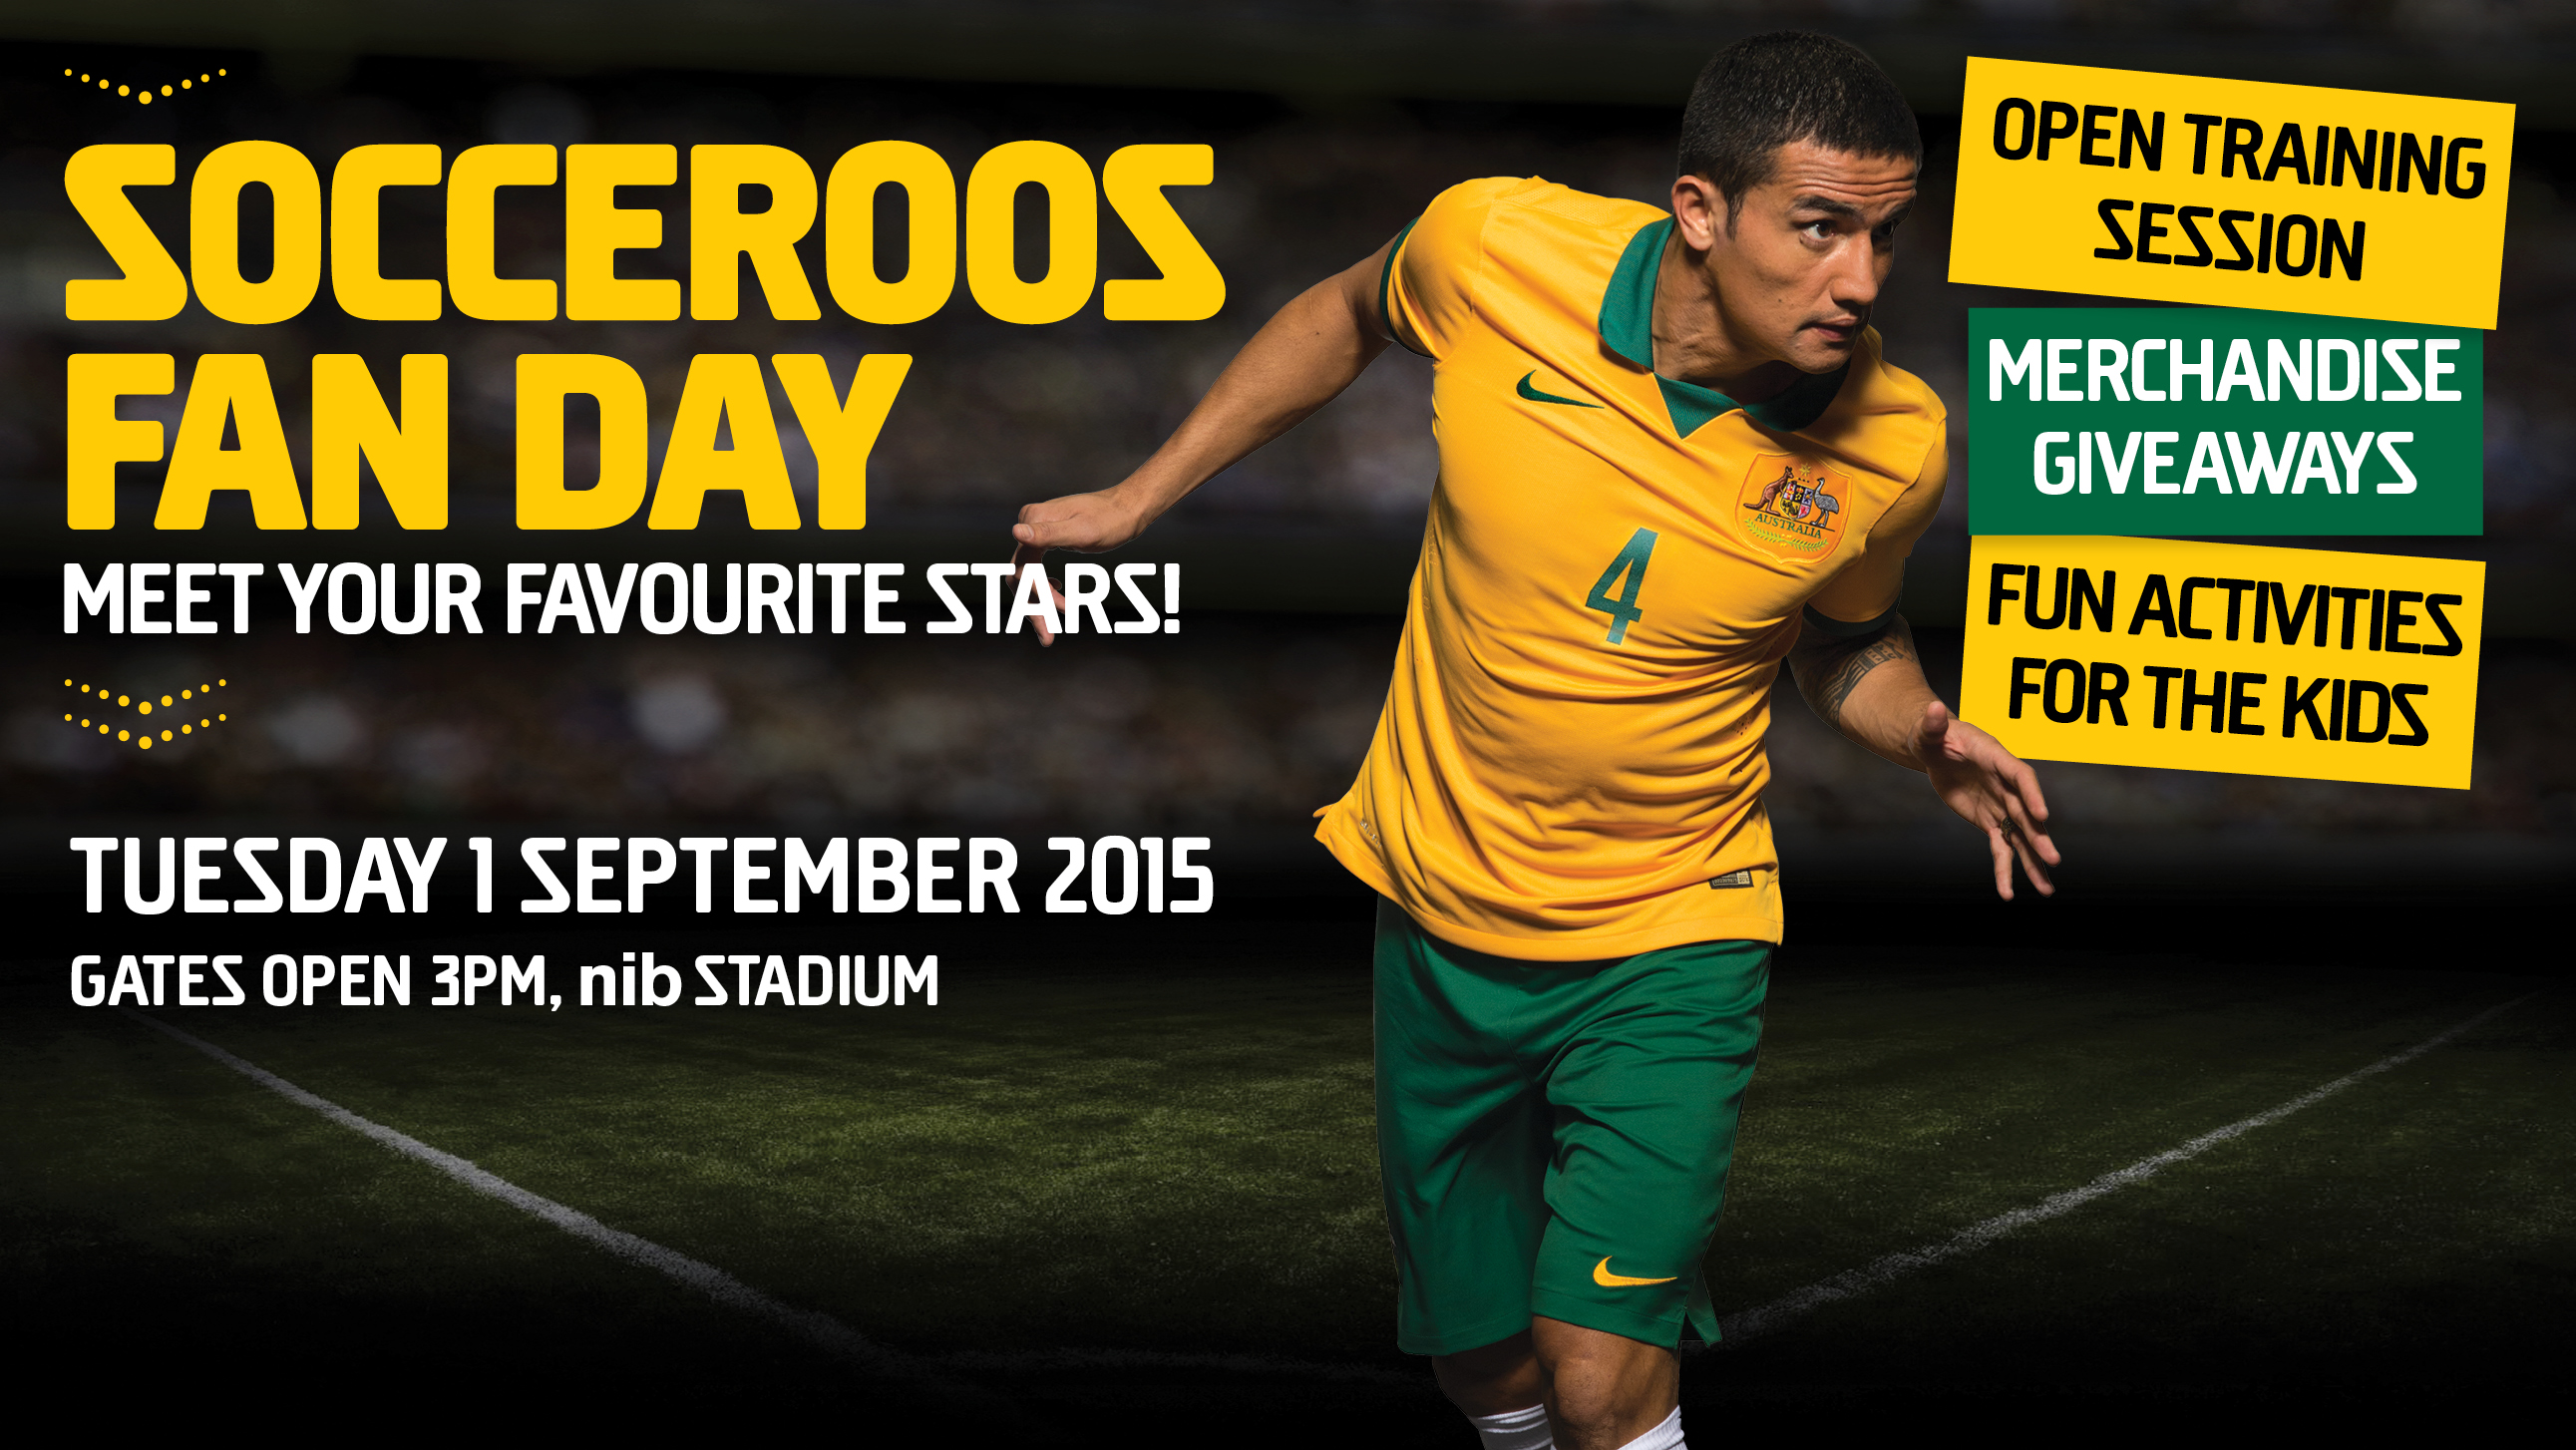 Socceroos Fan Day lead